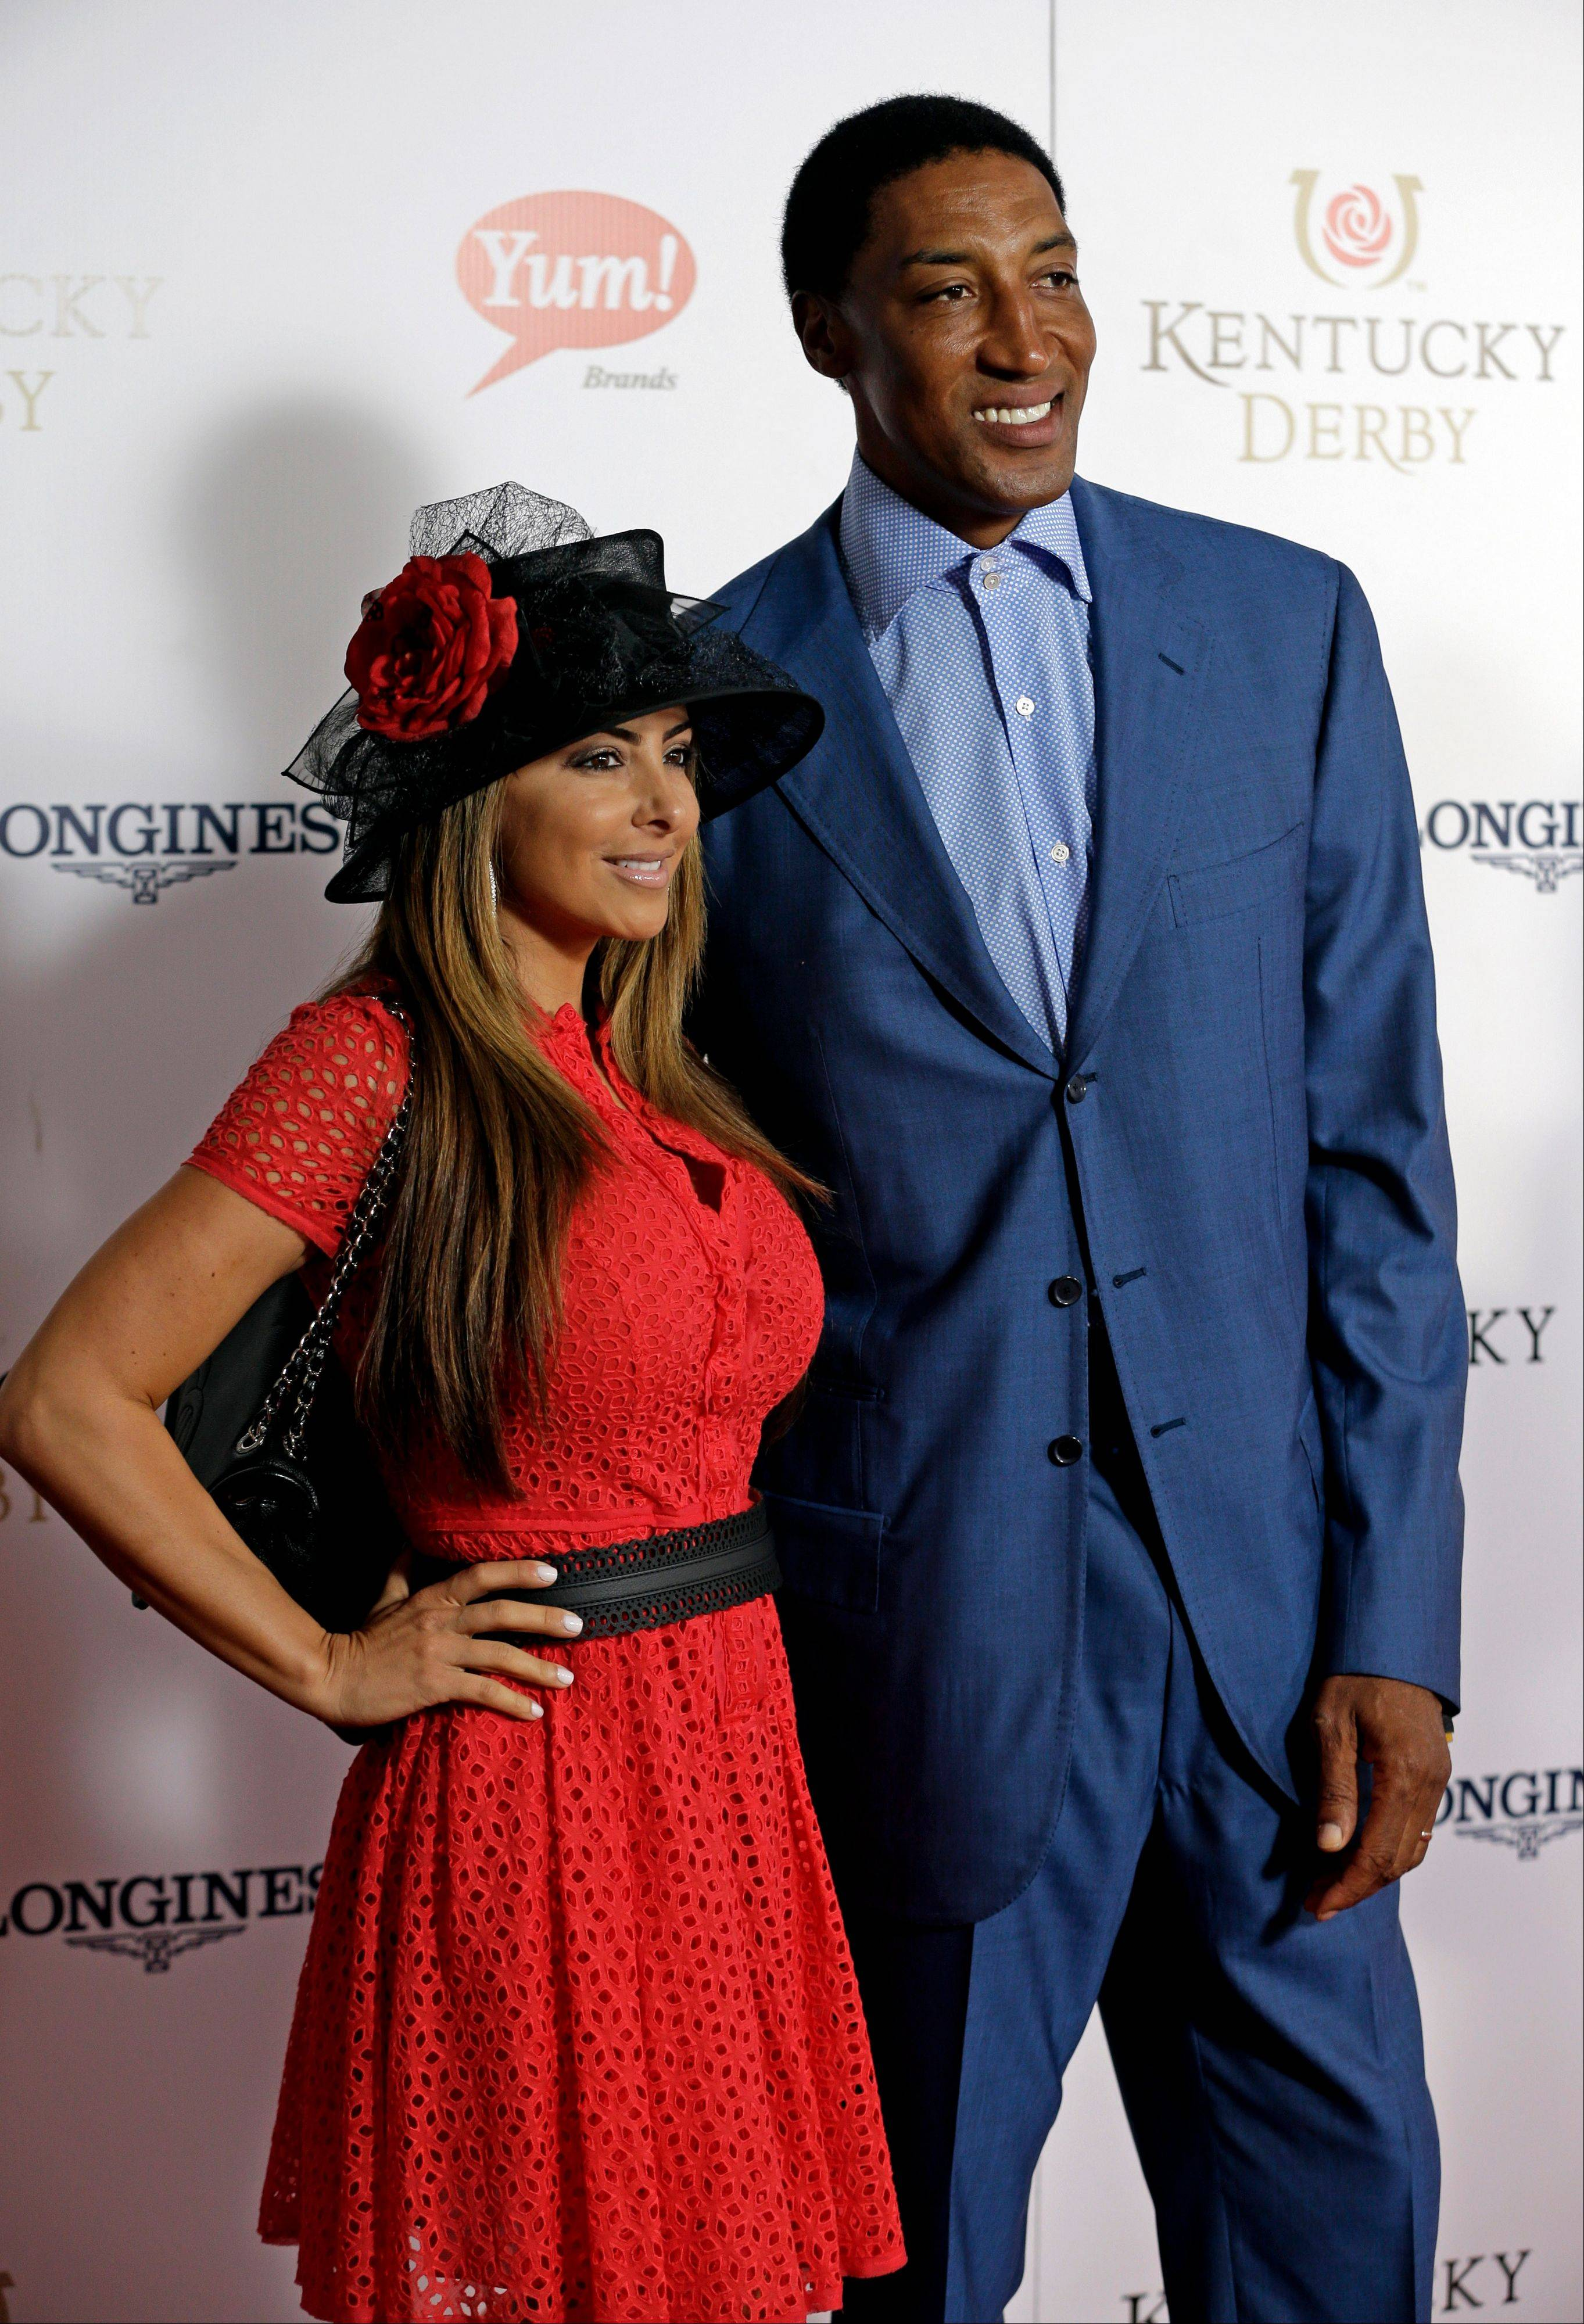 Former NBA player Scottie Pippen arrives with his wife Larsa to attend the 139th Kentucky Derby.